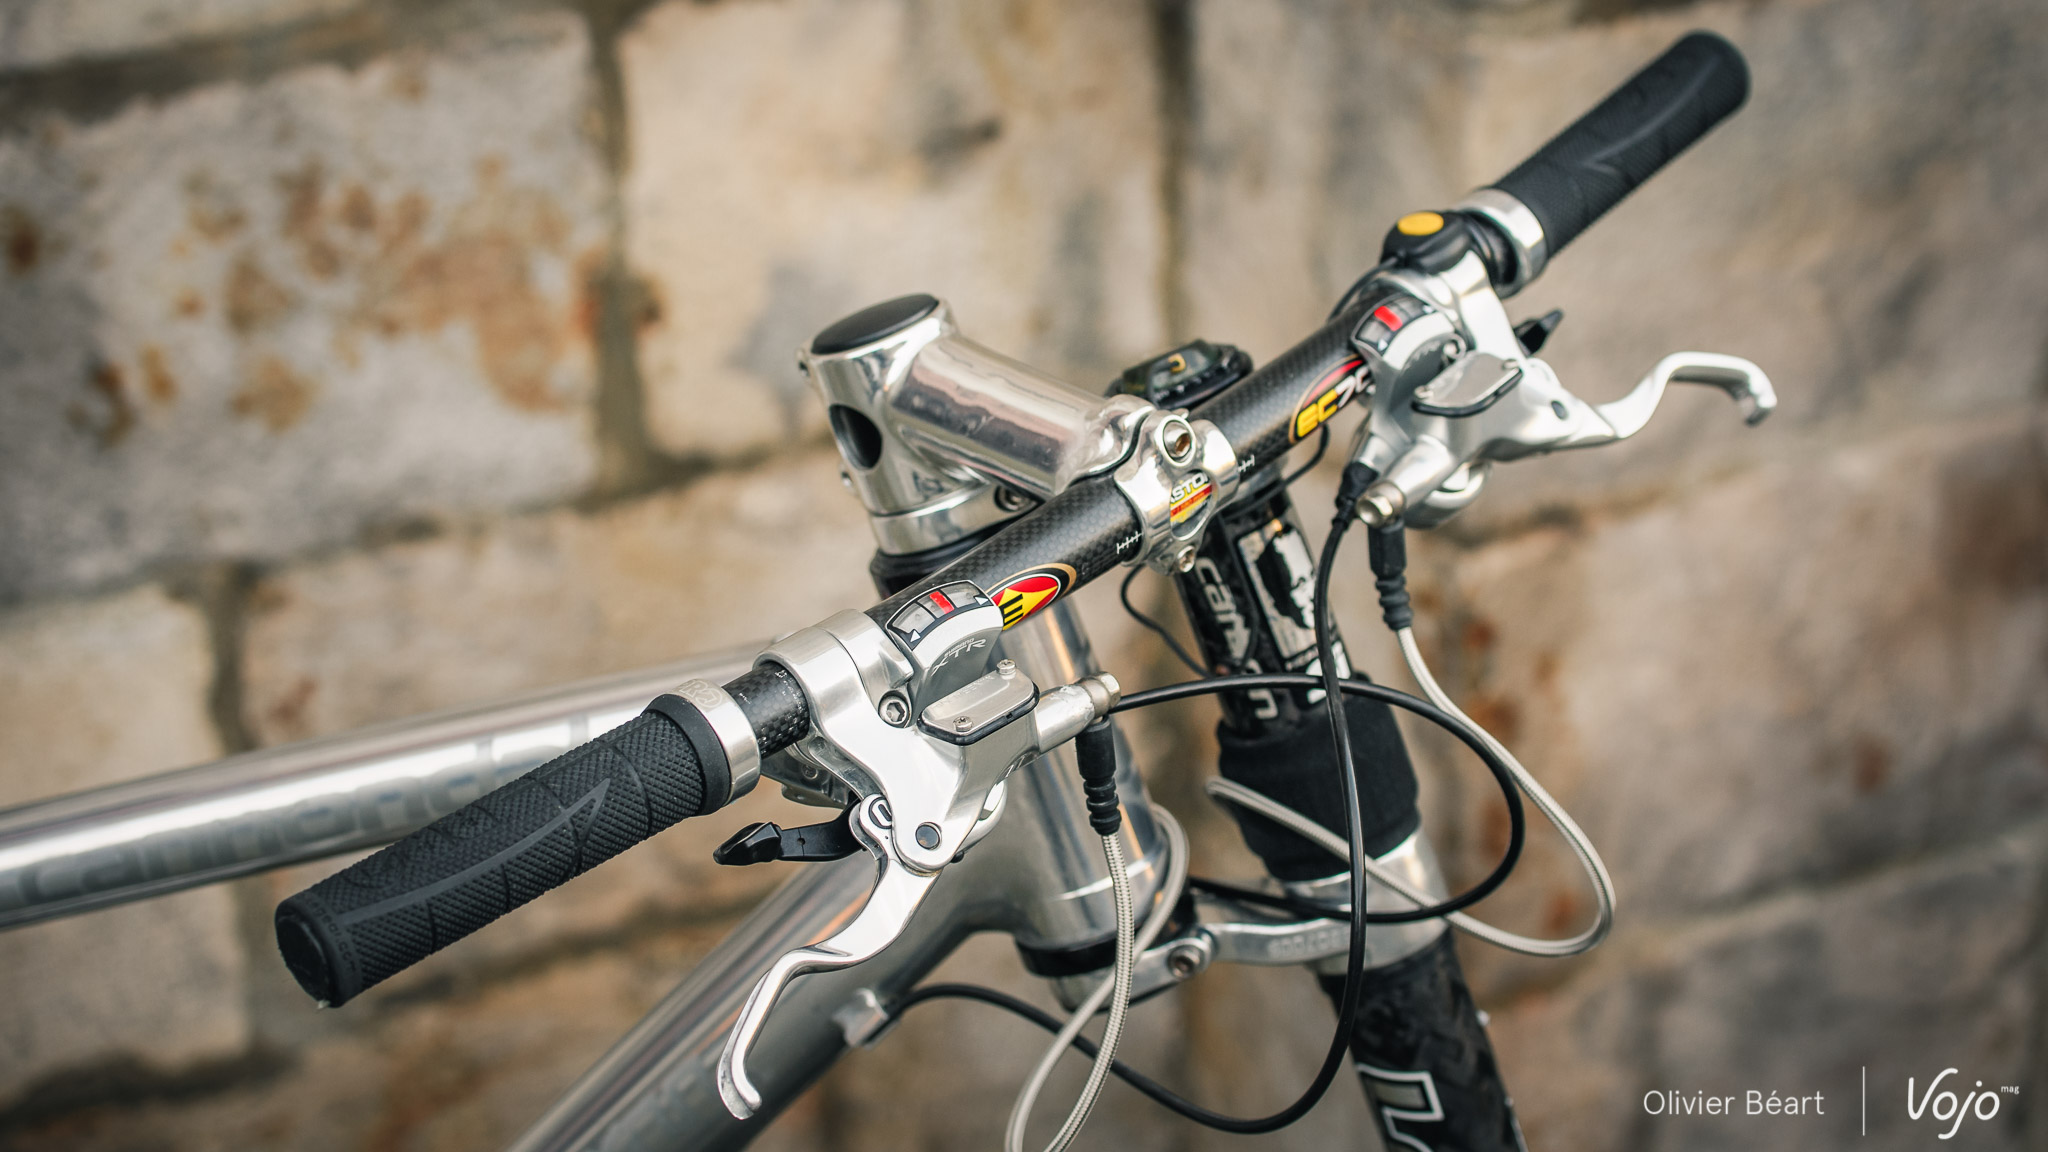 Cannondale_Jekyll_GoodBoy_Copyright_OBeart_VojoMag-1-5